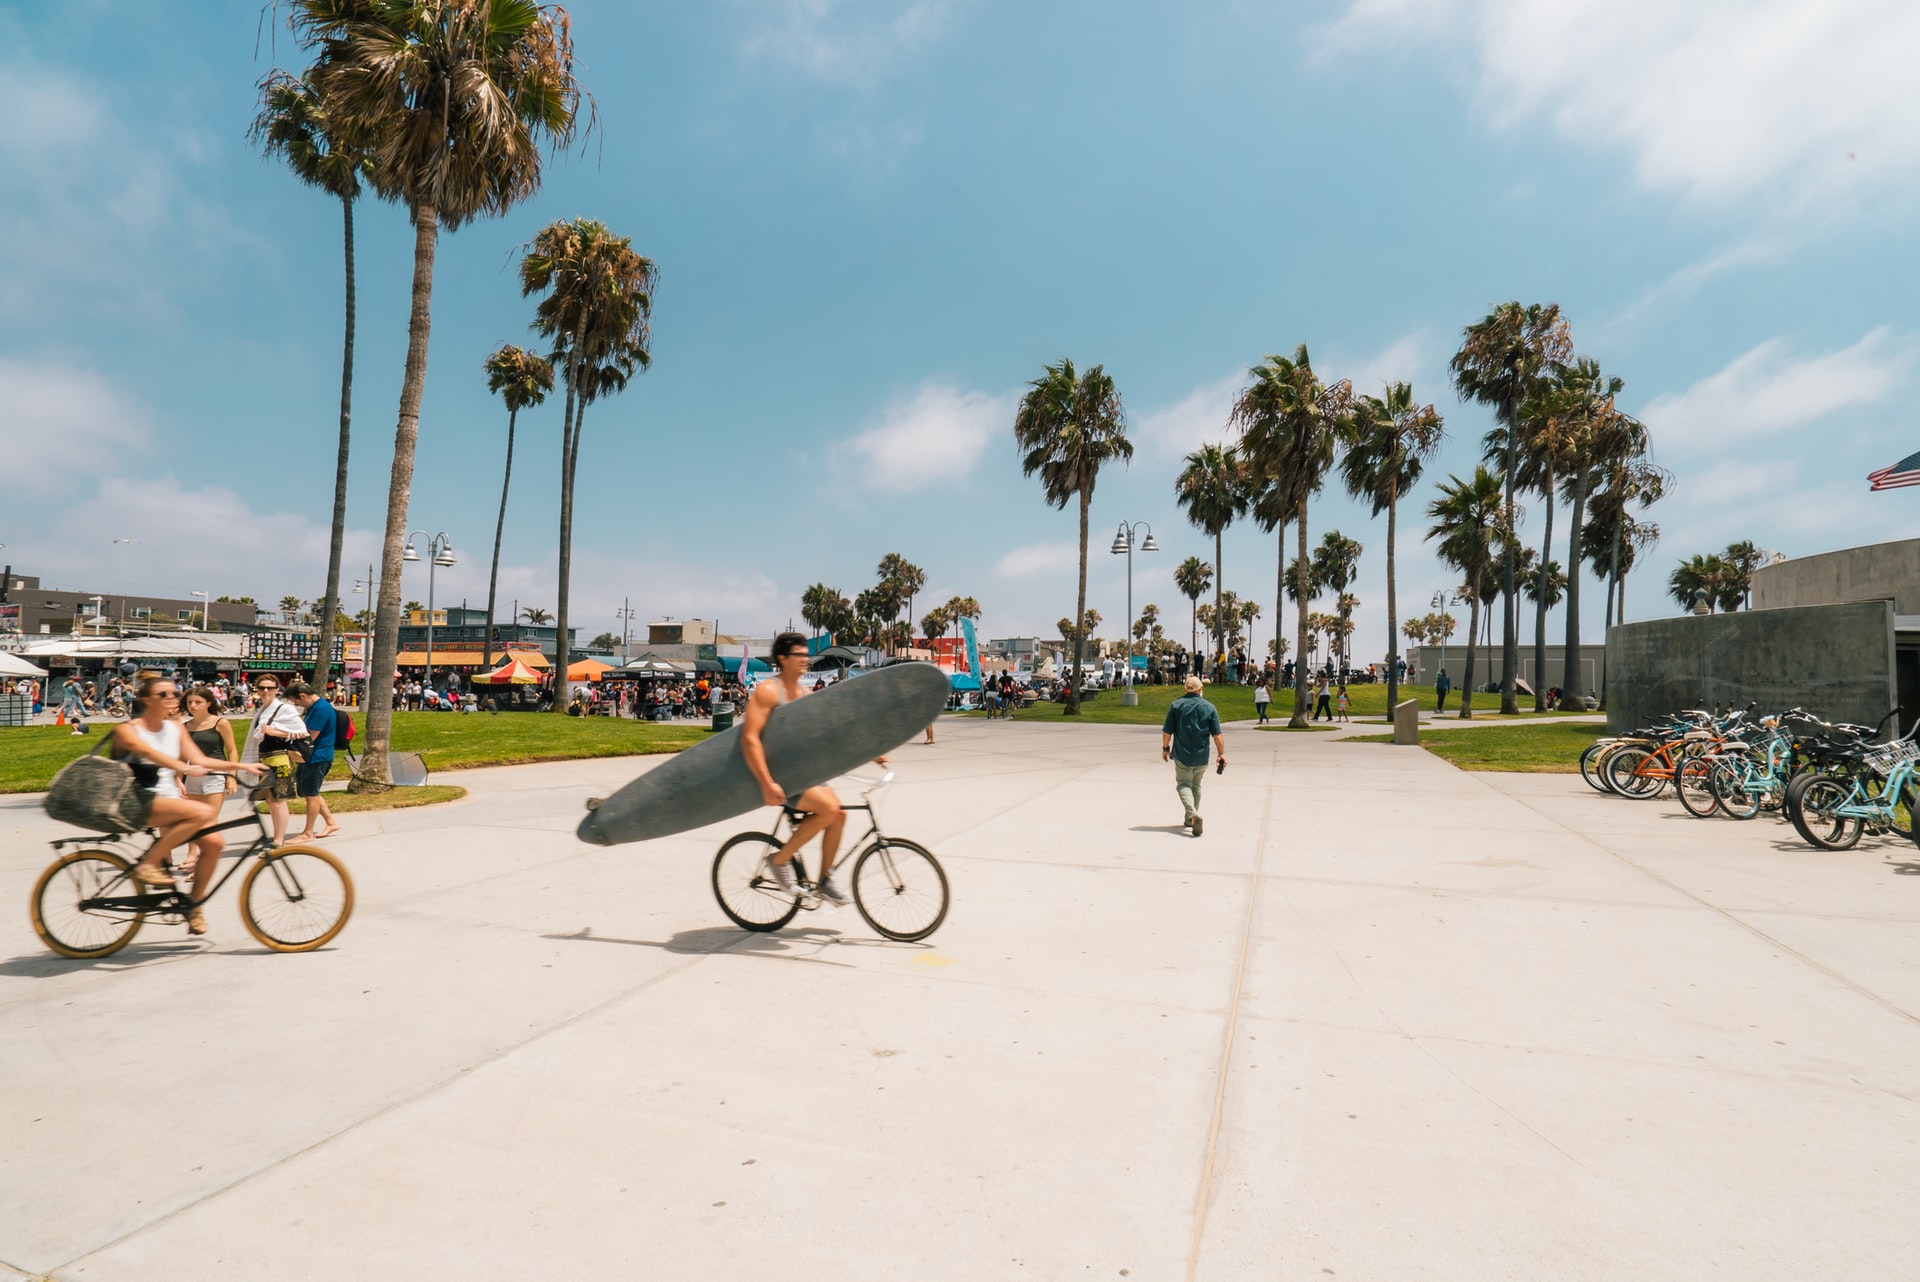 surfer and bicyclists at venice beach, california